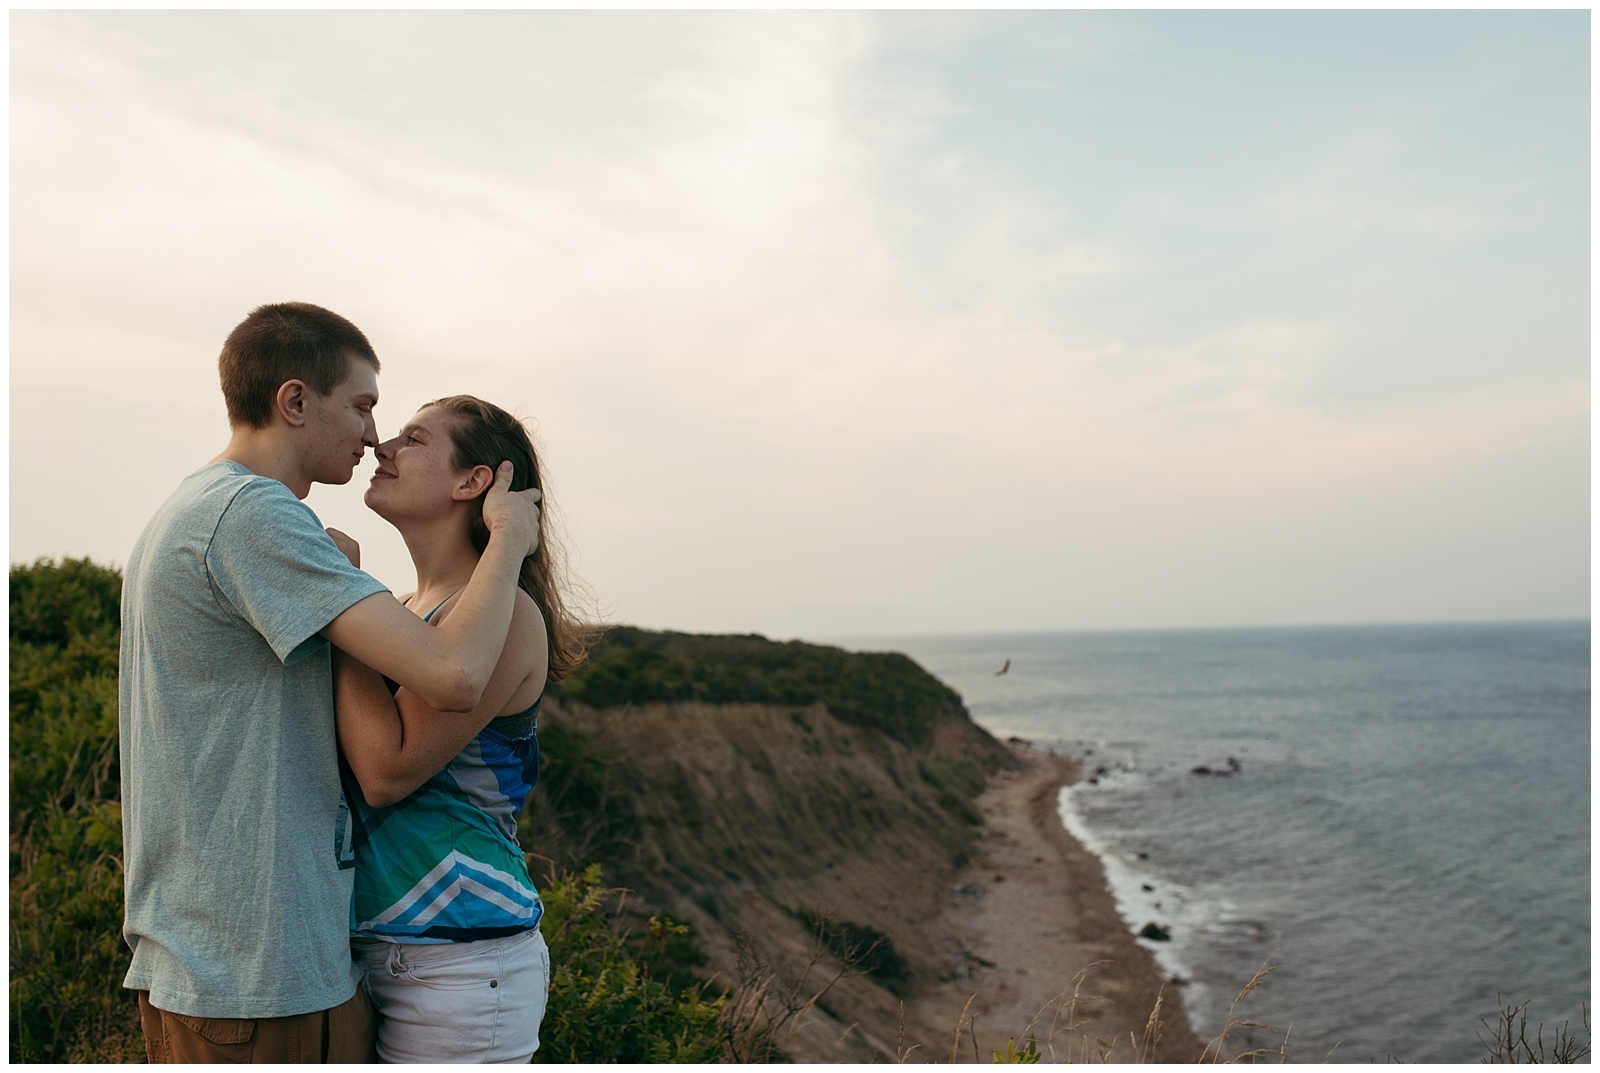 Block-Island-Engagement-Session-Bailey-Q-Photo-Boston-Wedding-Photographer-012.jpg